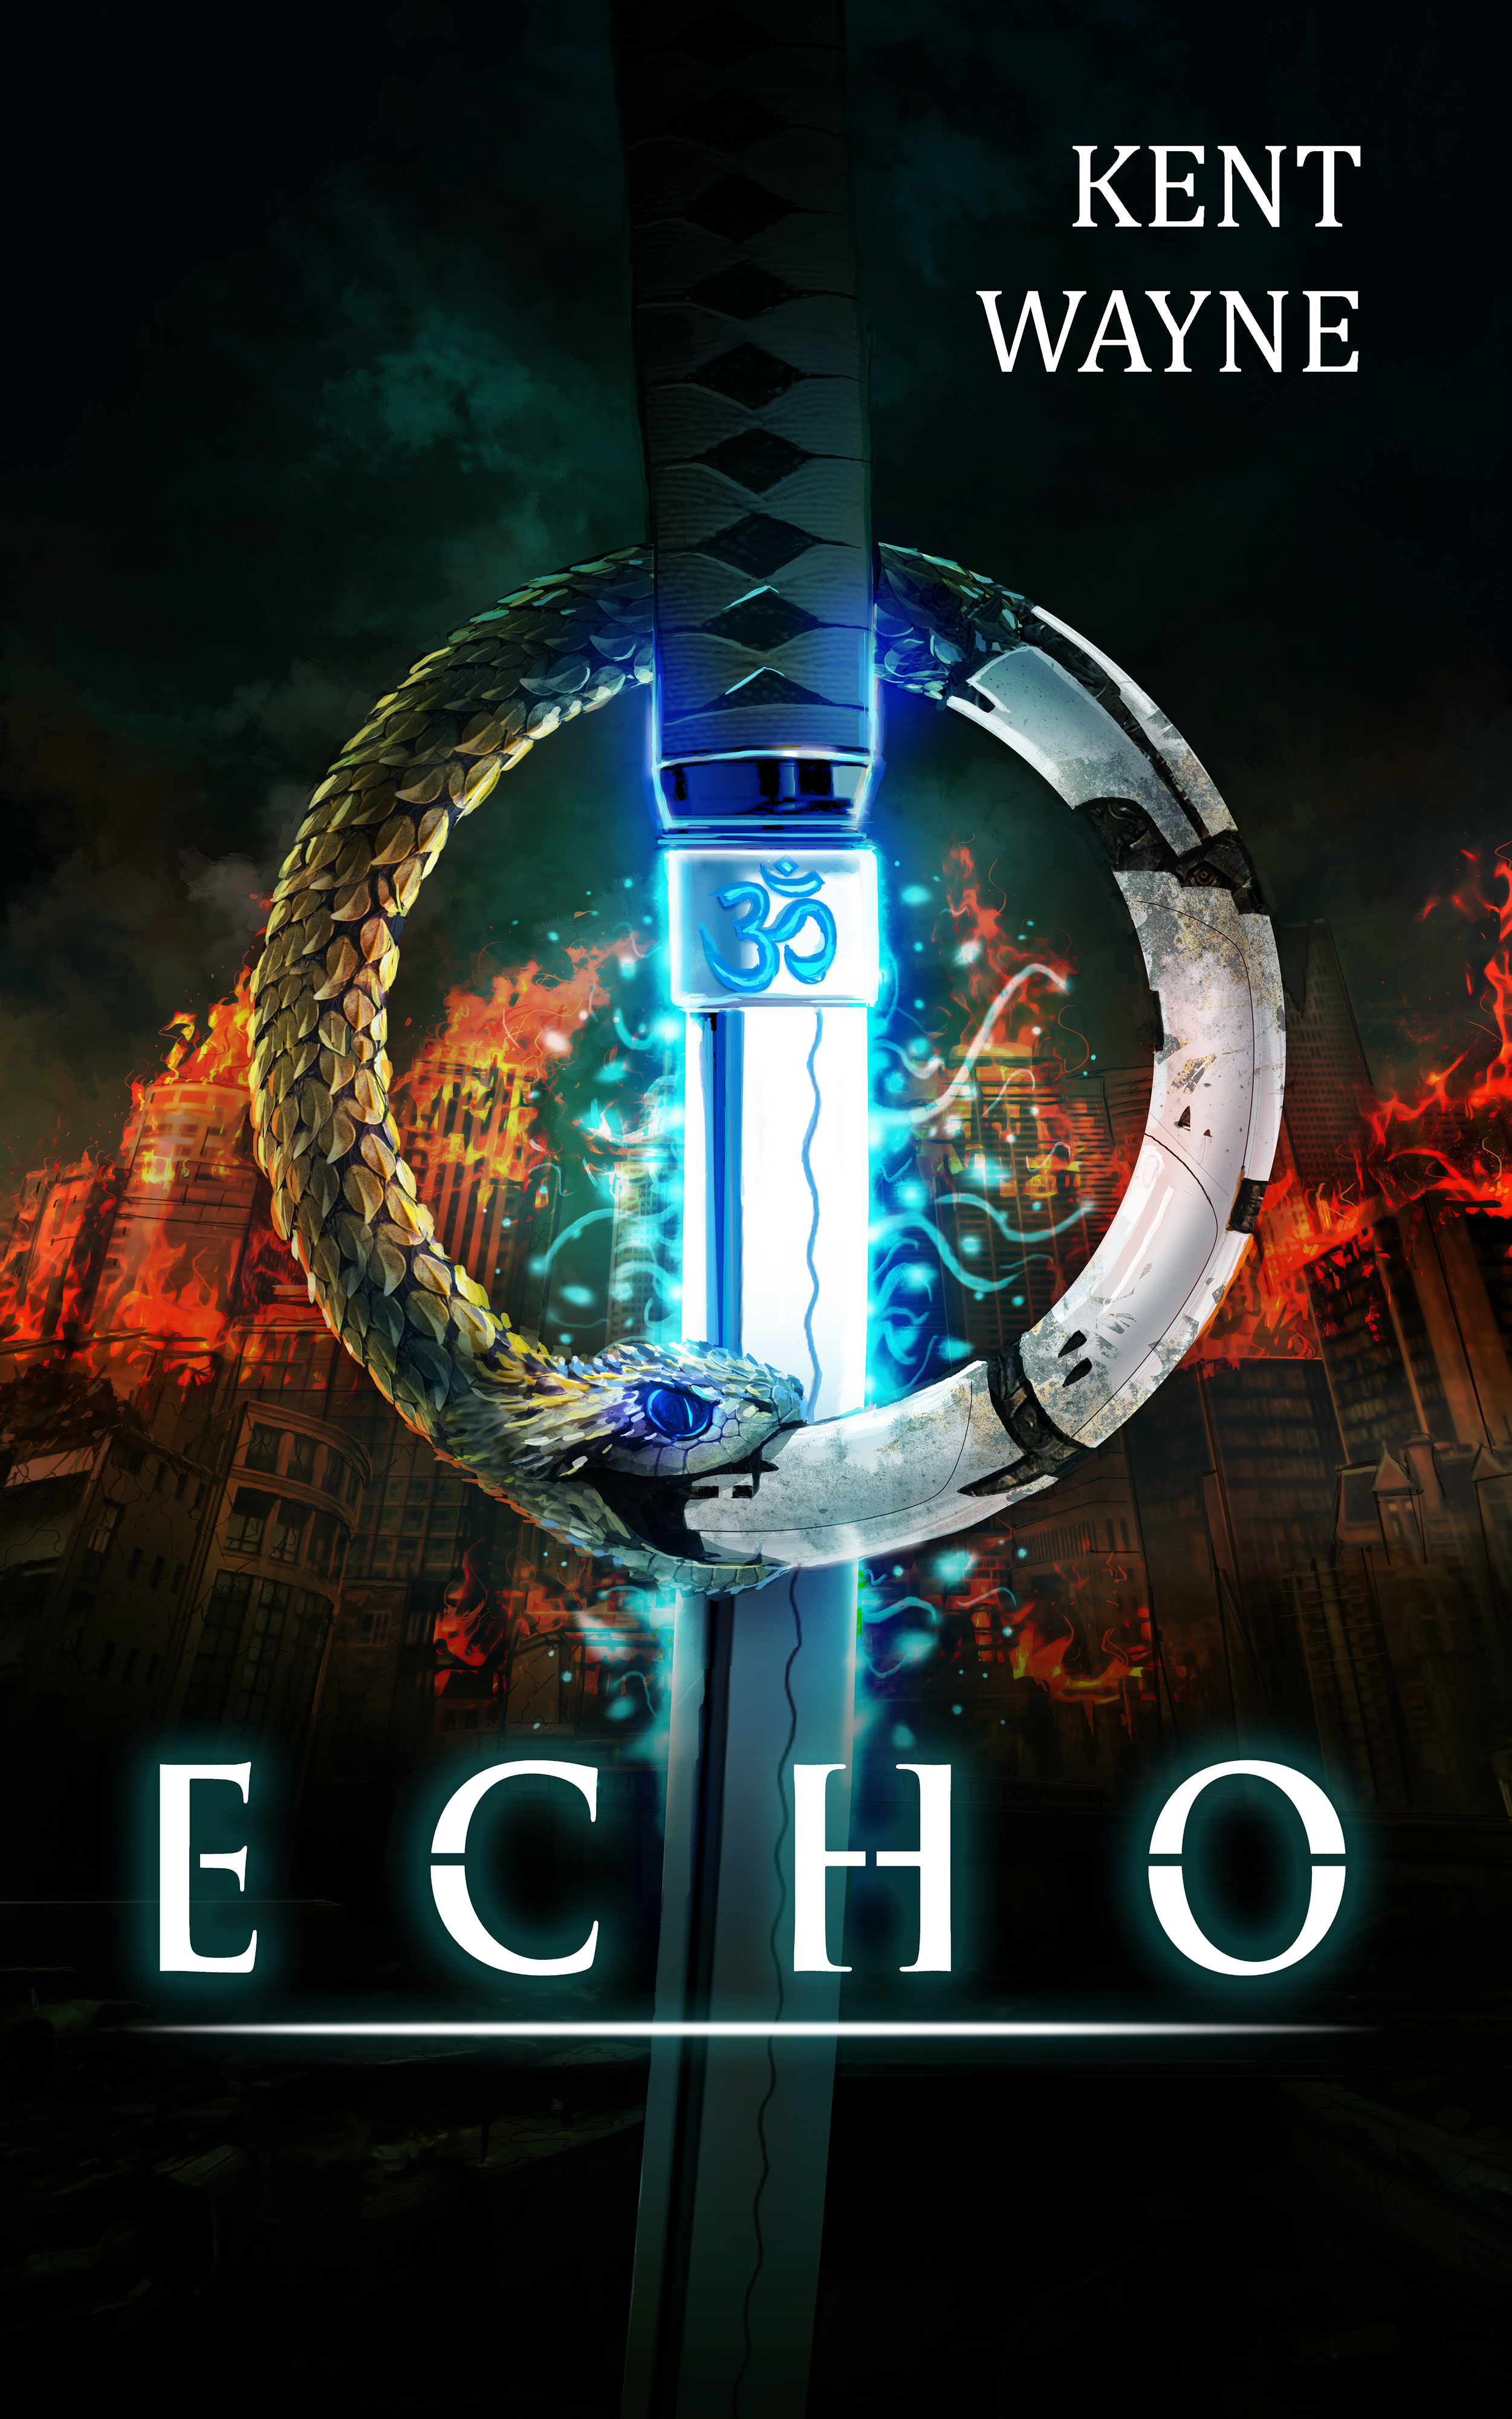 Get yer copy of Echo!